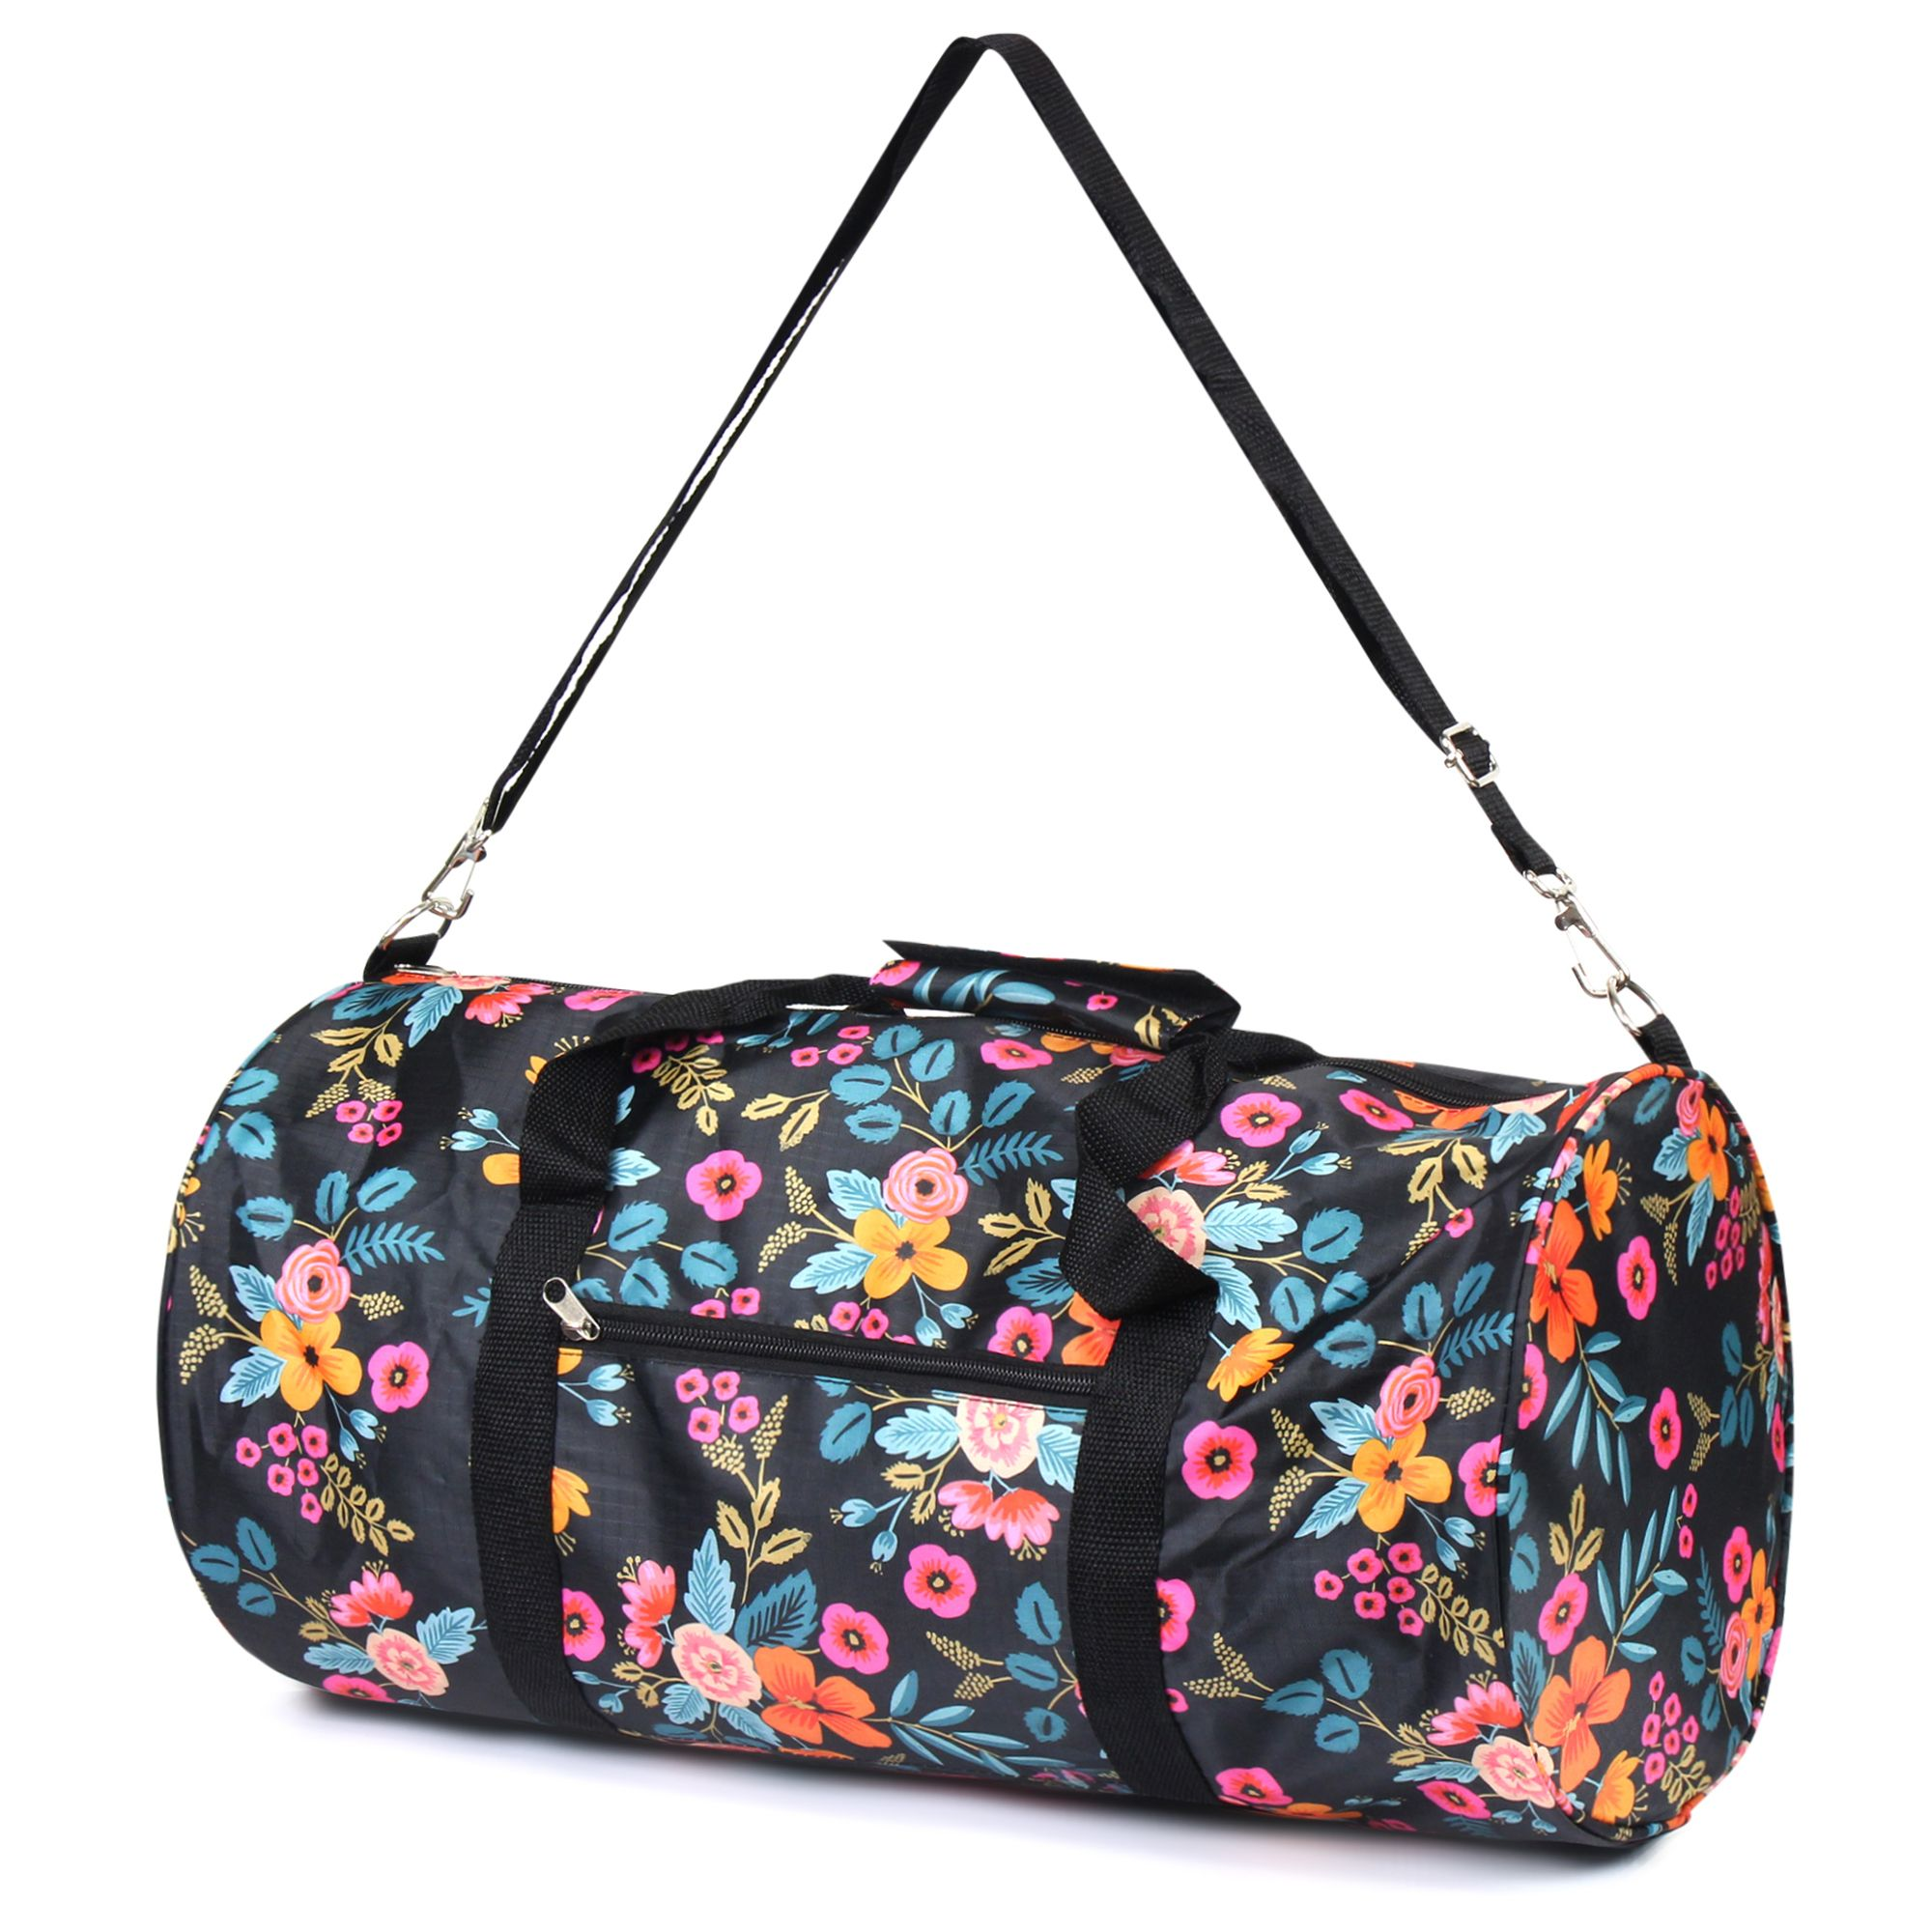 Flowers And Camera Duffel Style Carry On Sports Travel Bag with Shoulder Strap Zippered Compartments